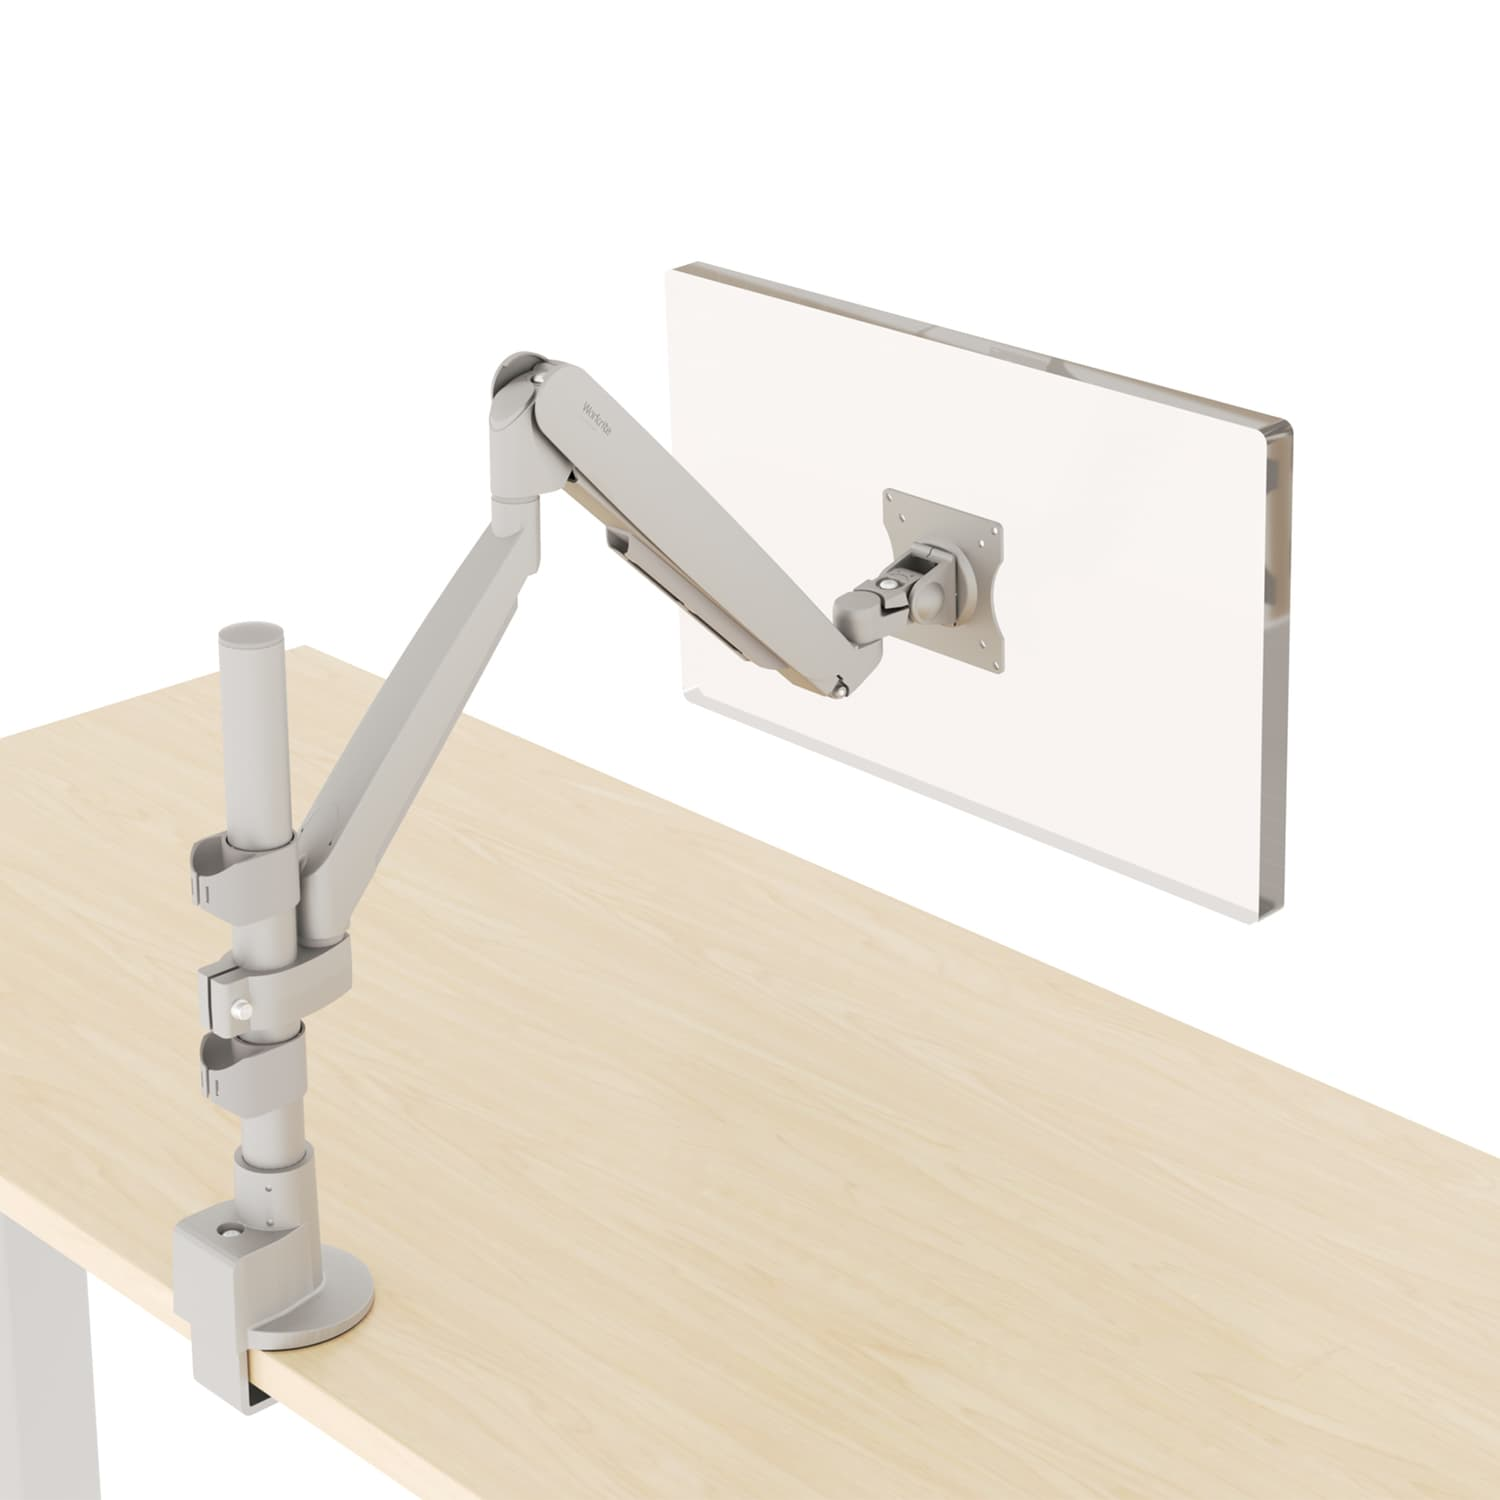 conform-sts-monitor-arm